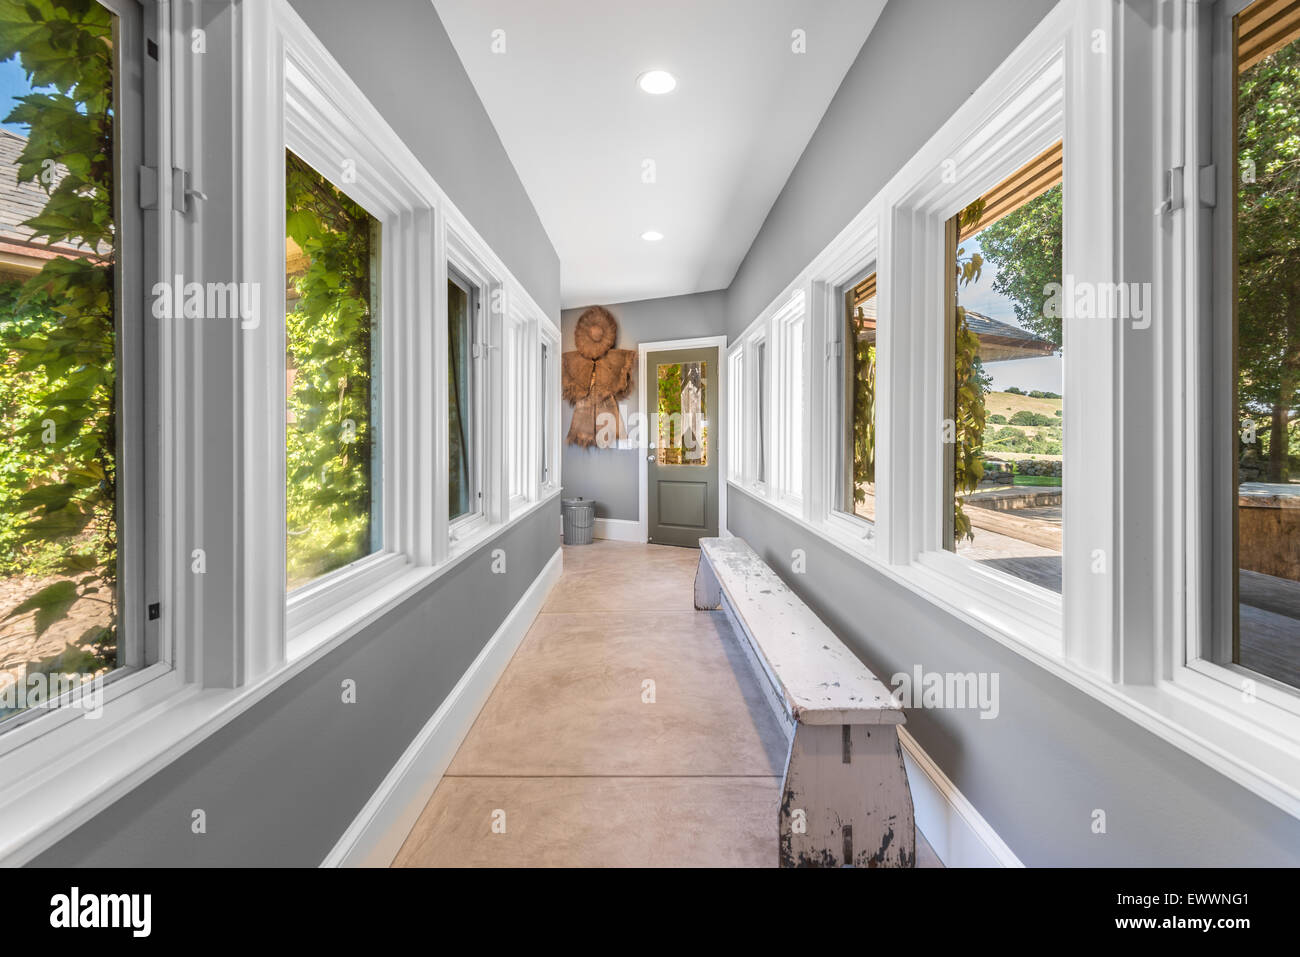 Long distressed wooden slab bench inside new modern home hallway - Stock Image